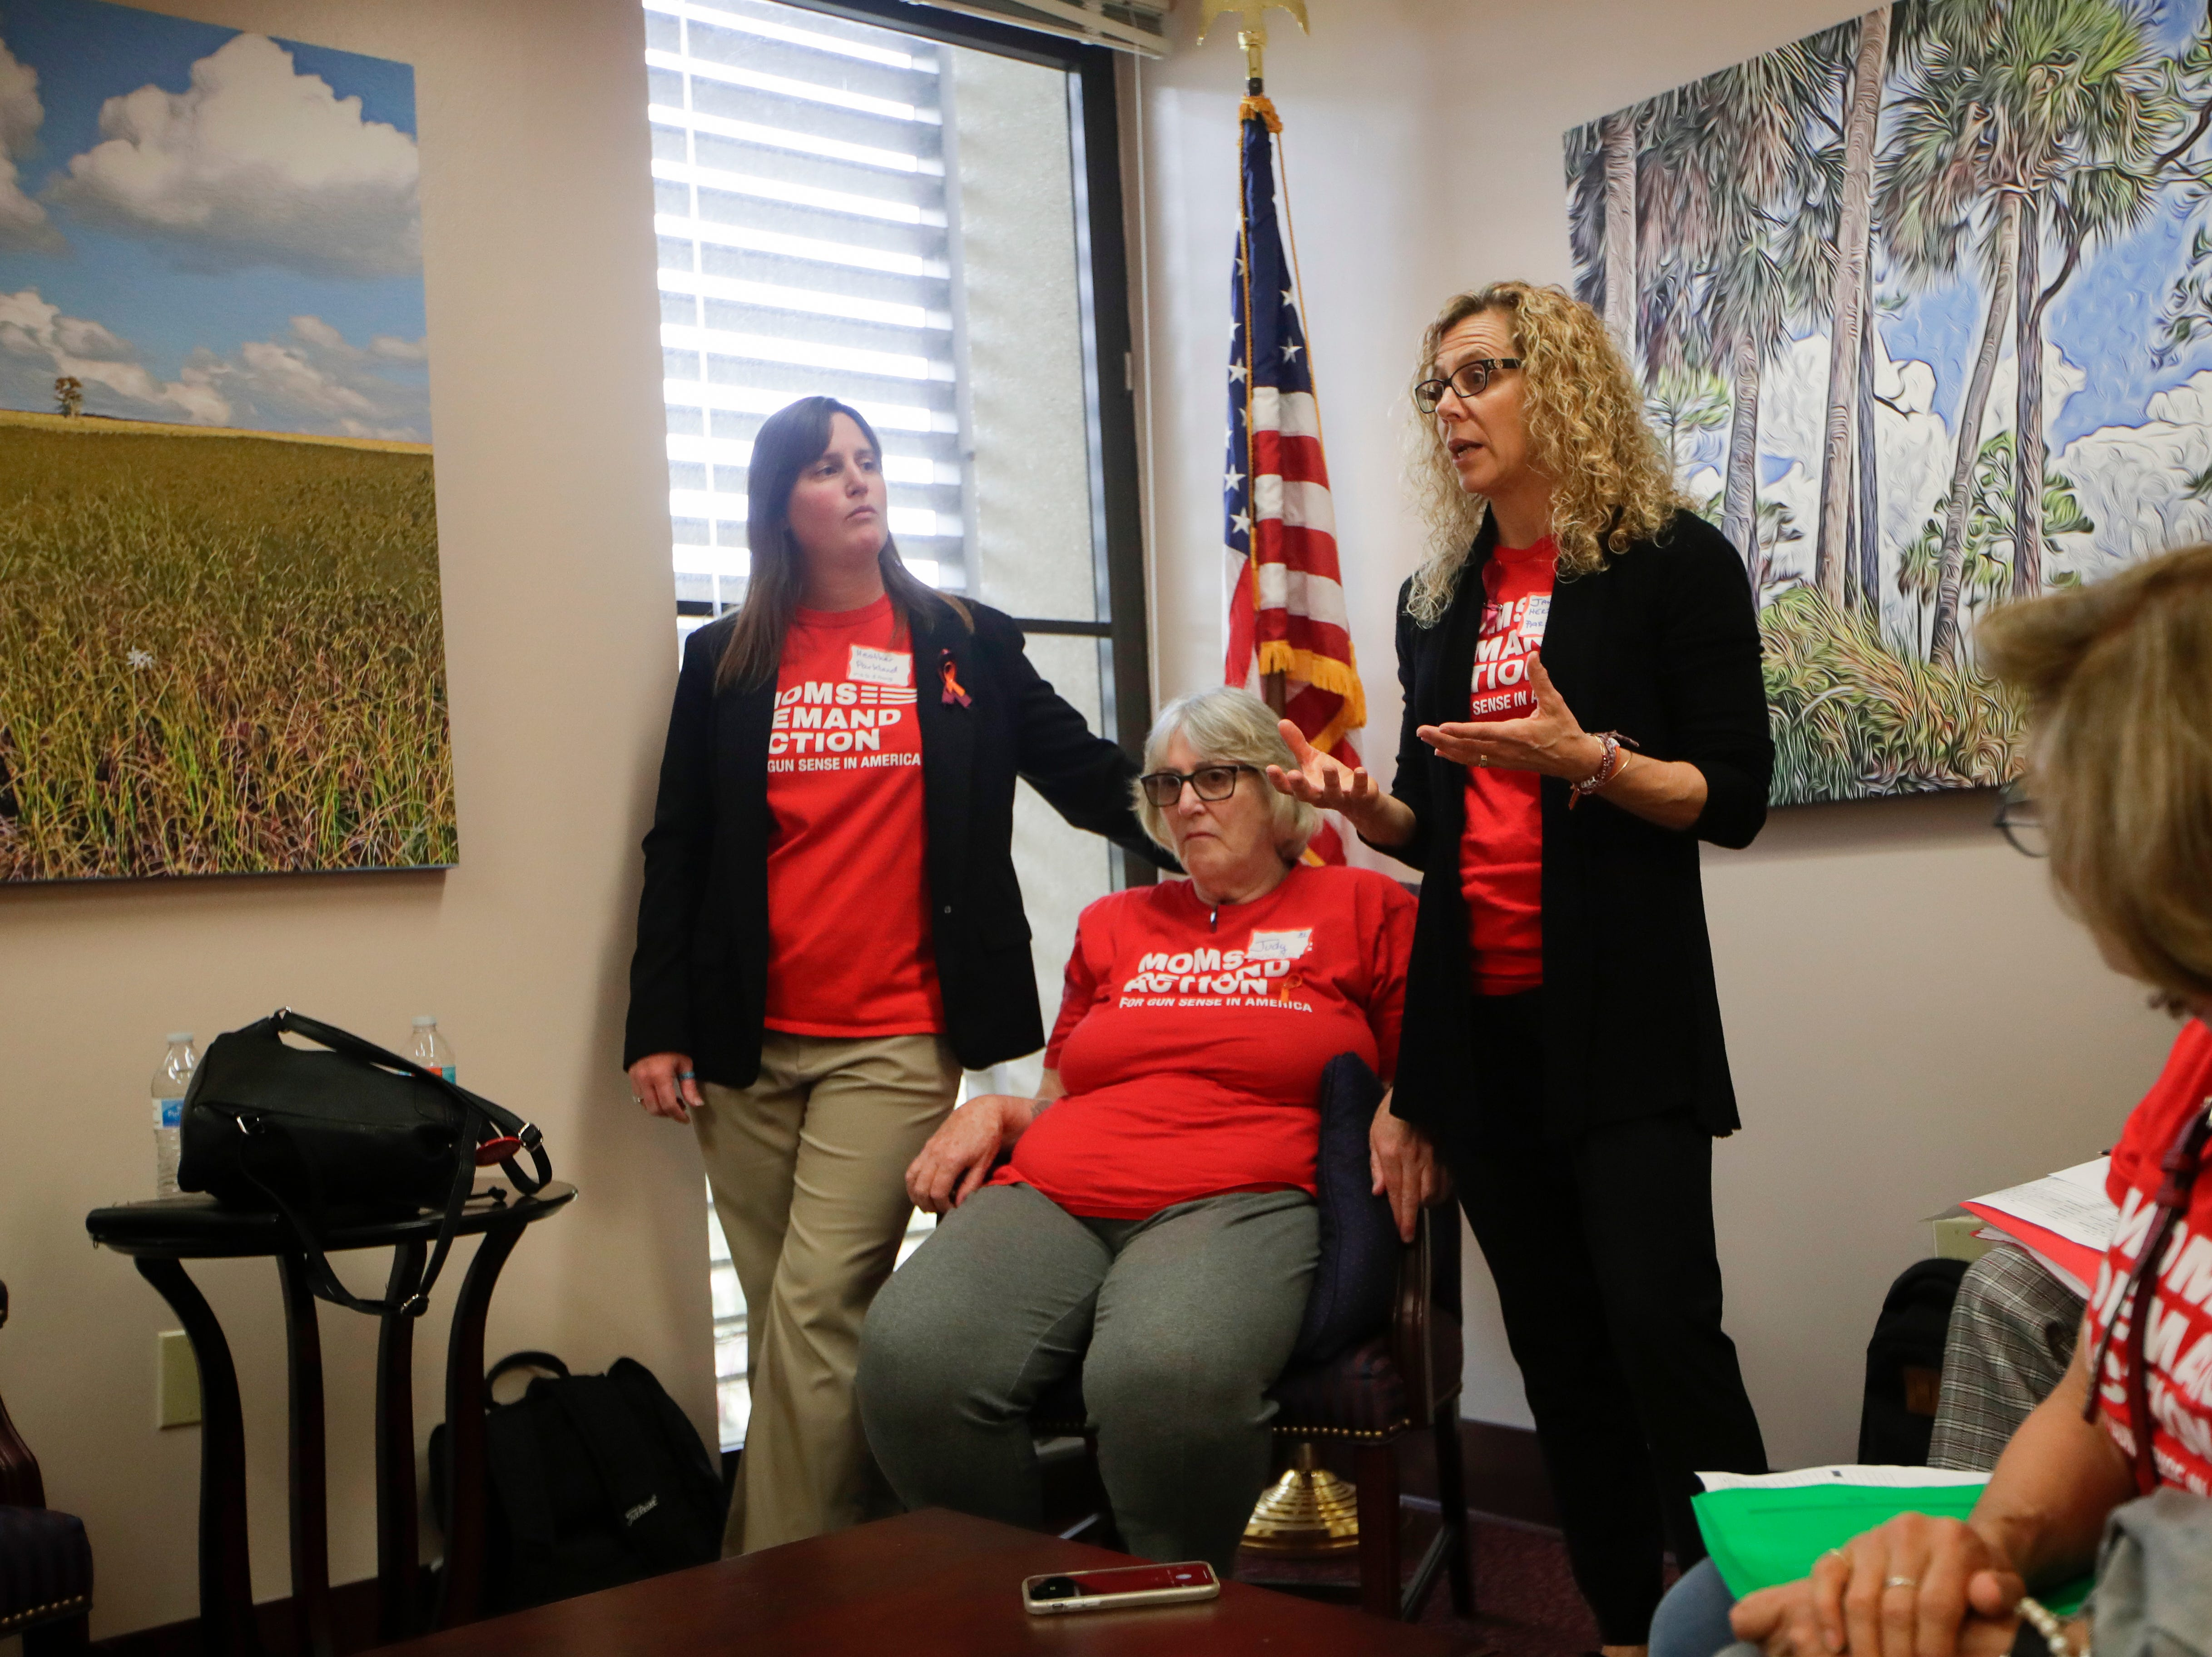 Heather Chapman, left, the mother of two Parkland shooting survivors and her mother Judy Denunzio listen as Janice Herbert-Bates, the mother of another Parkland shooting survivor goes over the bills that Mothers Demand Action would like to see be supported and opposed by Rep. Kirstin Jacobs. Over 500 activists visited the Capitol Wednesday, Feb. 6, 2019 to meet with lawmakers and lobby for stricter gun laws.